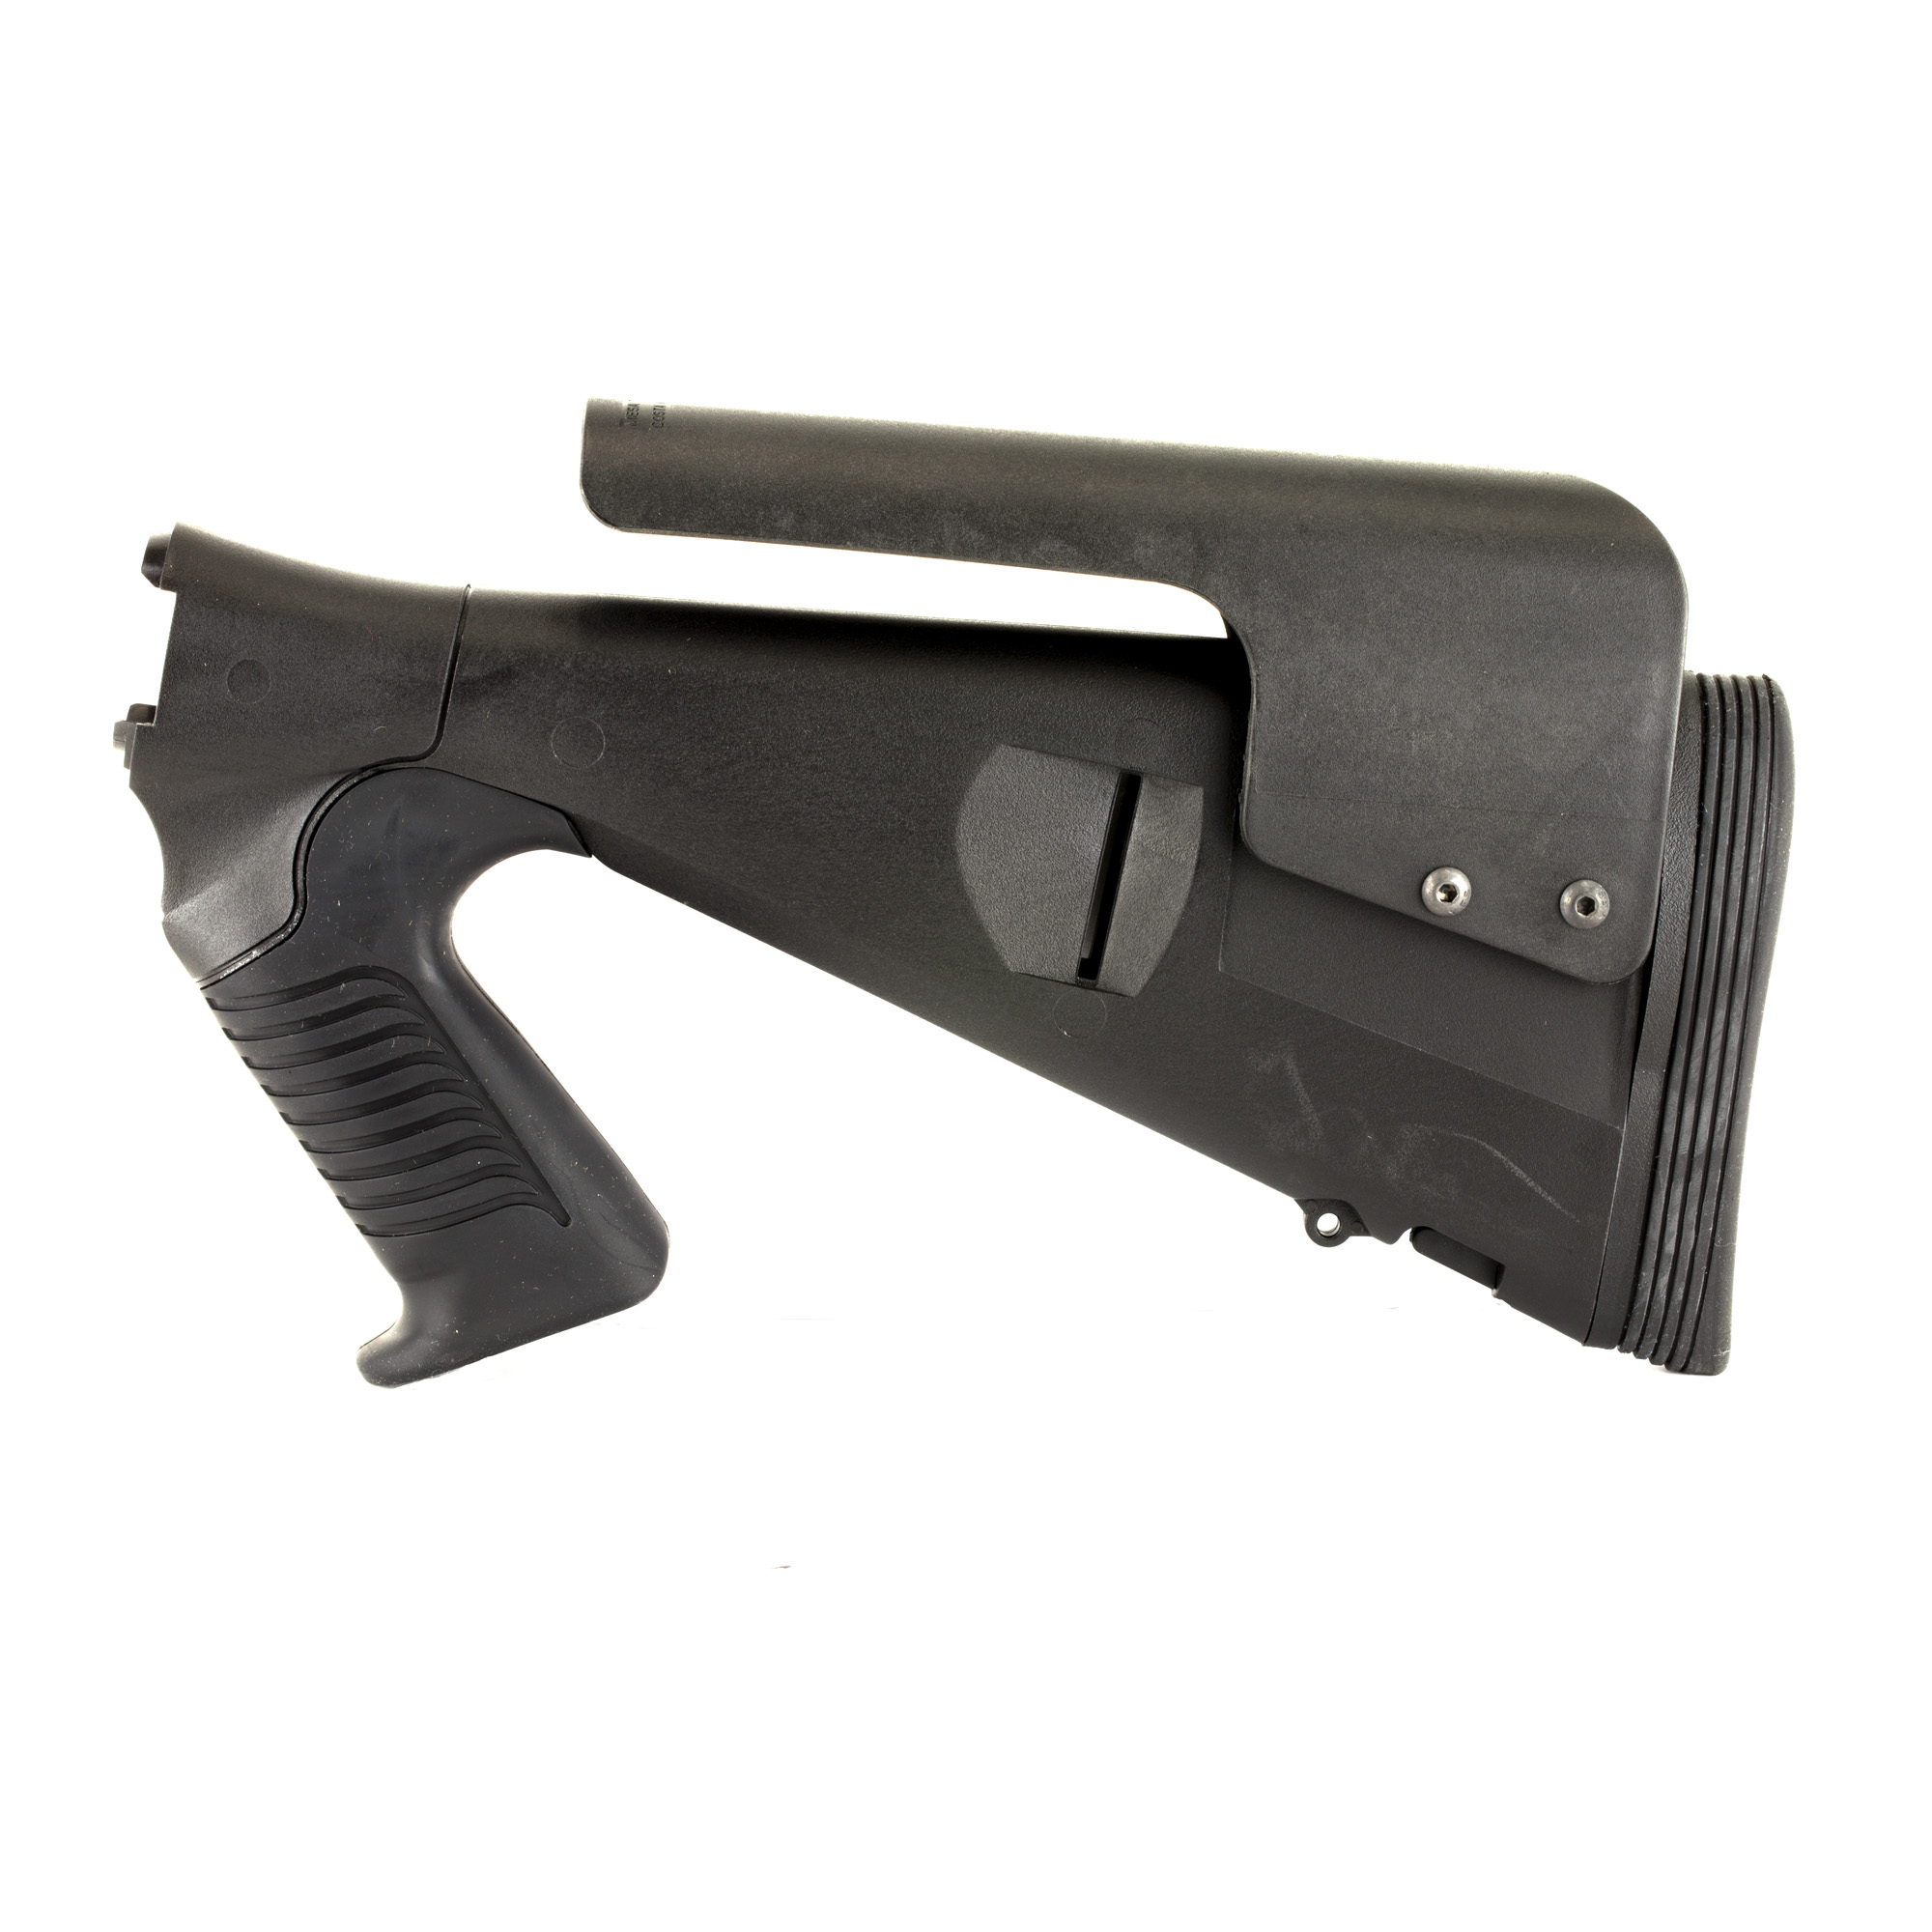 """Mesa Tactical's Urbino Pistol Grip Stock for the Remington 870 is very popular in the law enforcement market due to the shorter length of pull"""" allowing the user to wear body armor or bulky clothing without extending their reach. The reduced length-of-pull (LoP) makes the Urbino the first truly tactical stock for Remington shotguns. The Urbino Tactical stock is durable"""" easy to shoulder and will not slip. It is a fixed-length pistol grip shotgun stock made from injection-molded glass-filled nylon. Developed to meet the needs of law enforcement and military operators"""" the rugged Urbino Tactical stock features a 12 1/2"""" inch LoP"""" soft urethane rubber grip"""" adjustable cheek riser and Limbsaver Butt pad."""